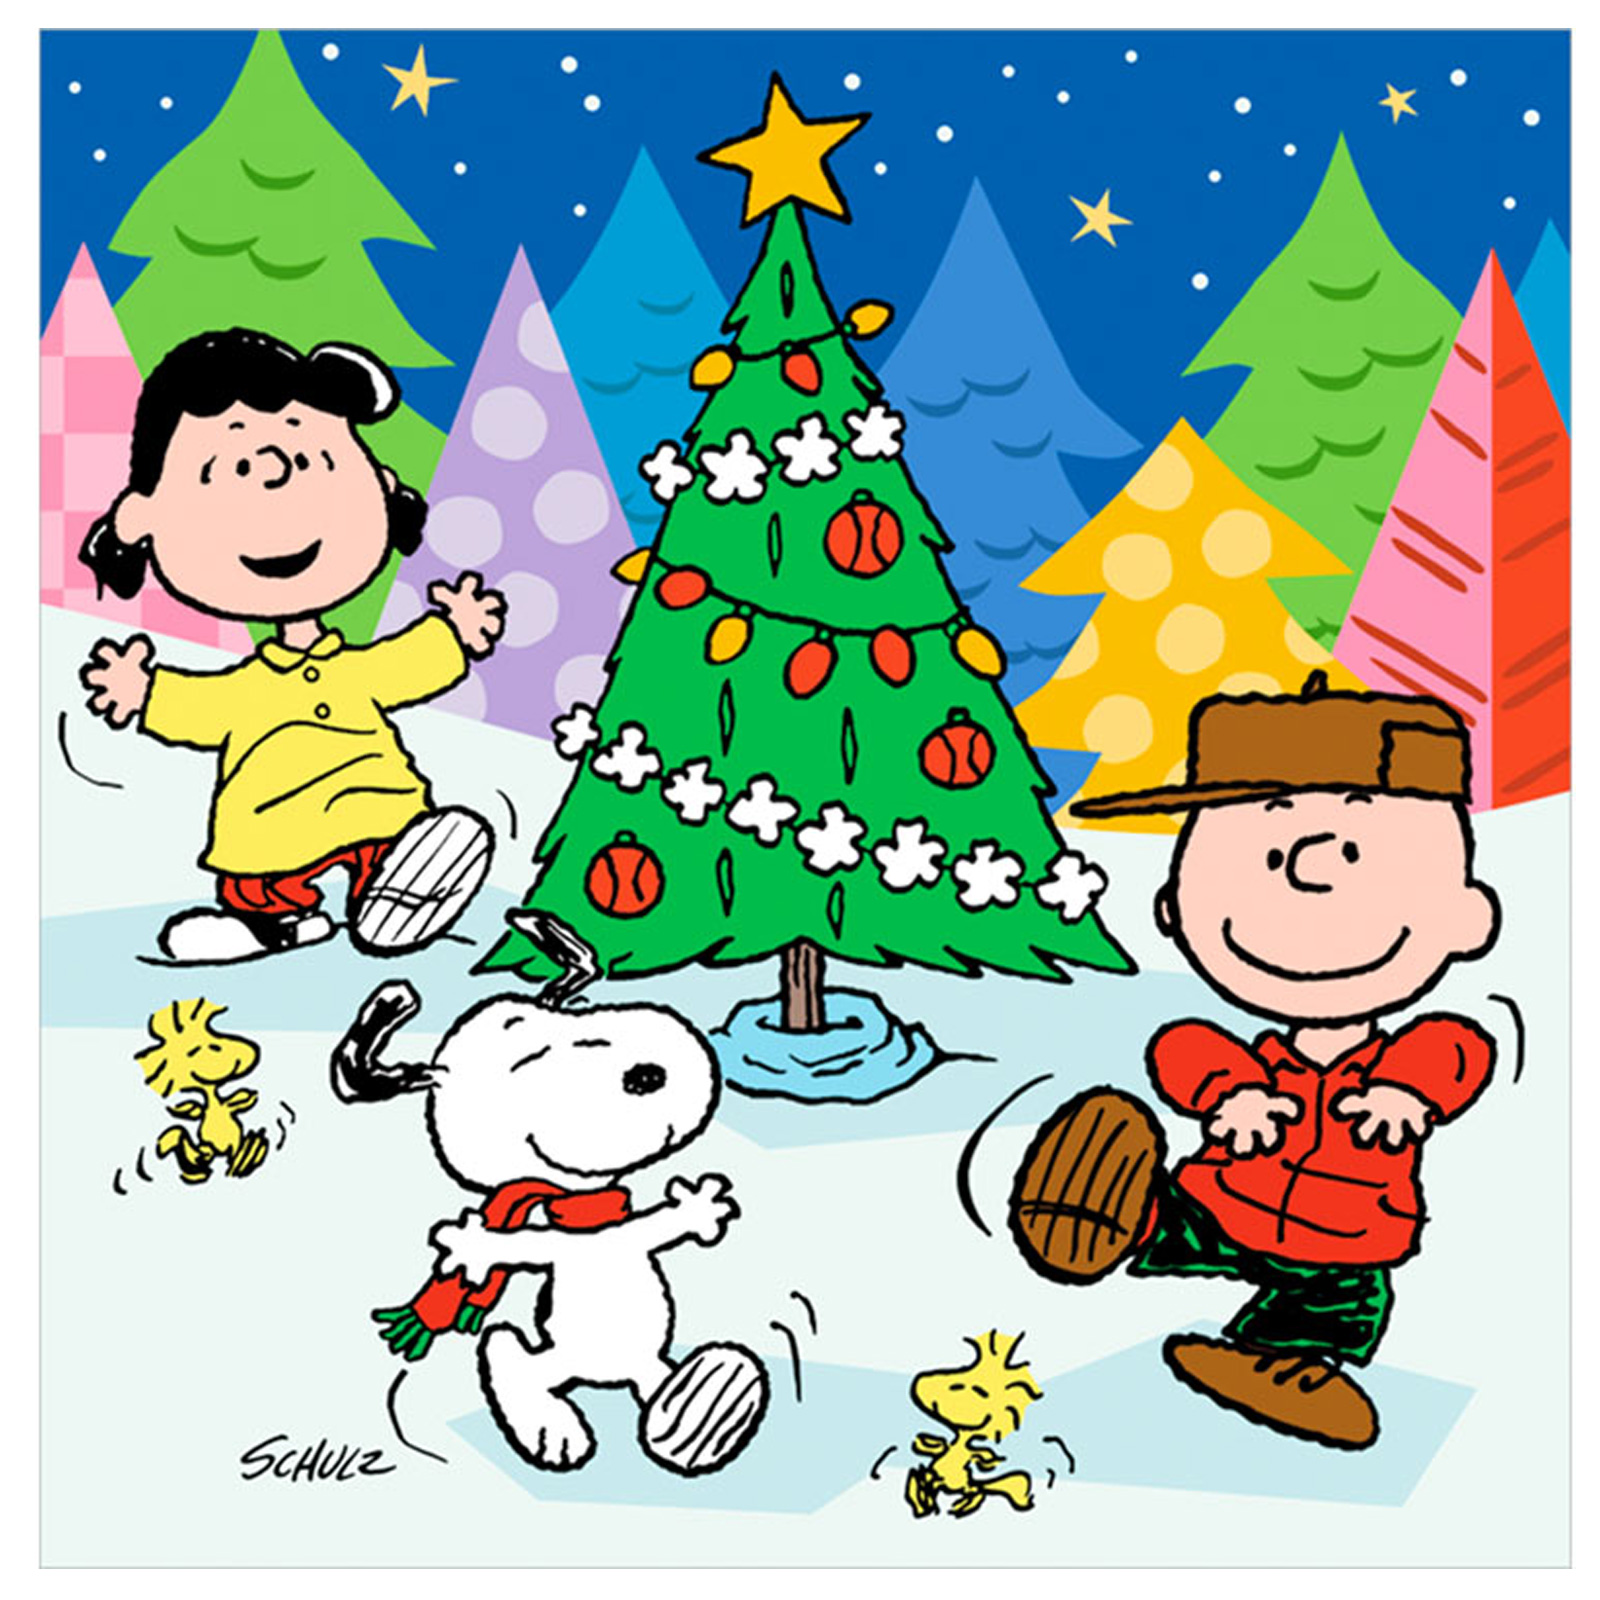 CHARLIE BROWN peanuts comics snoopy christmas f wallpaper background 1600x1600